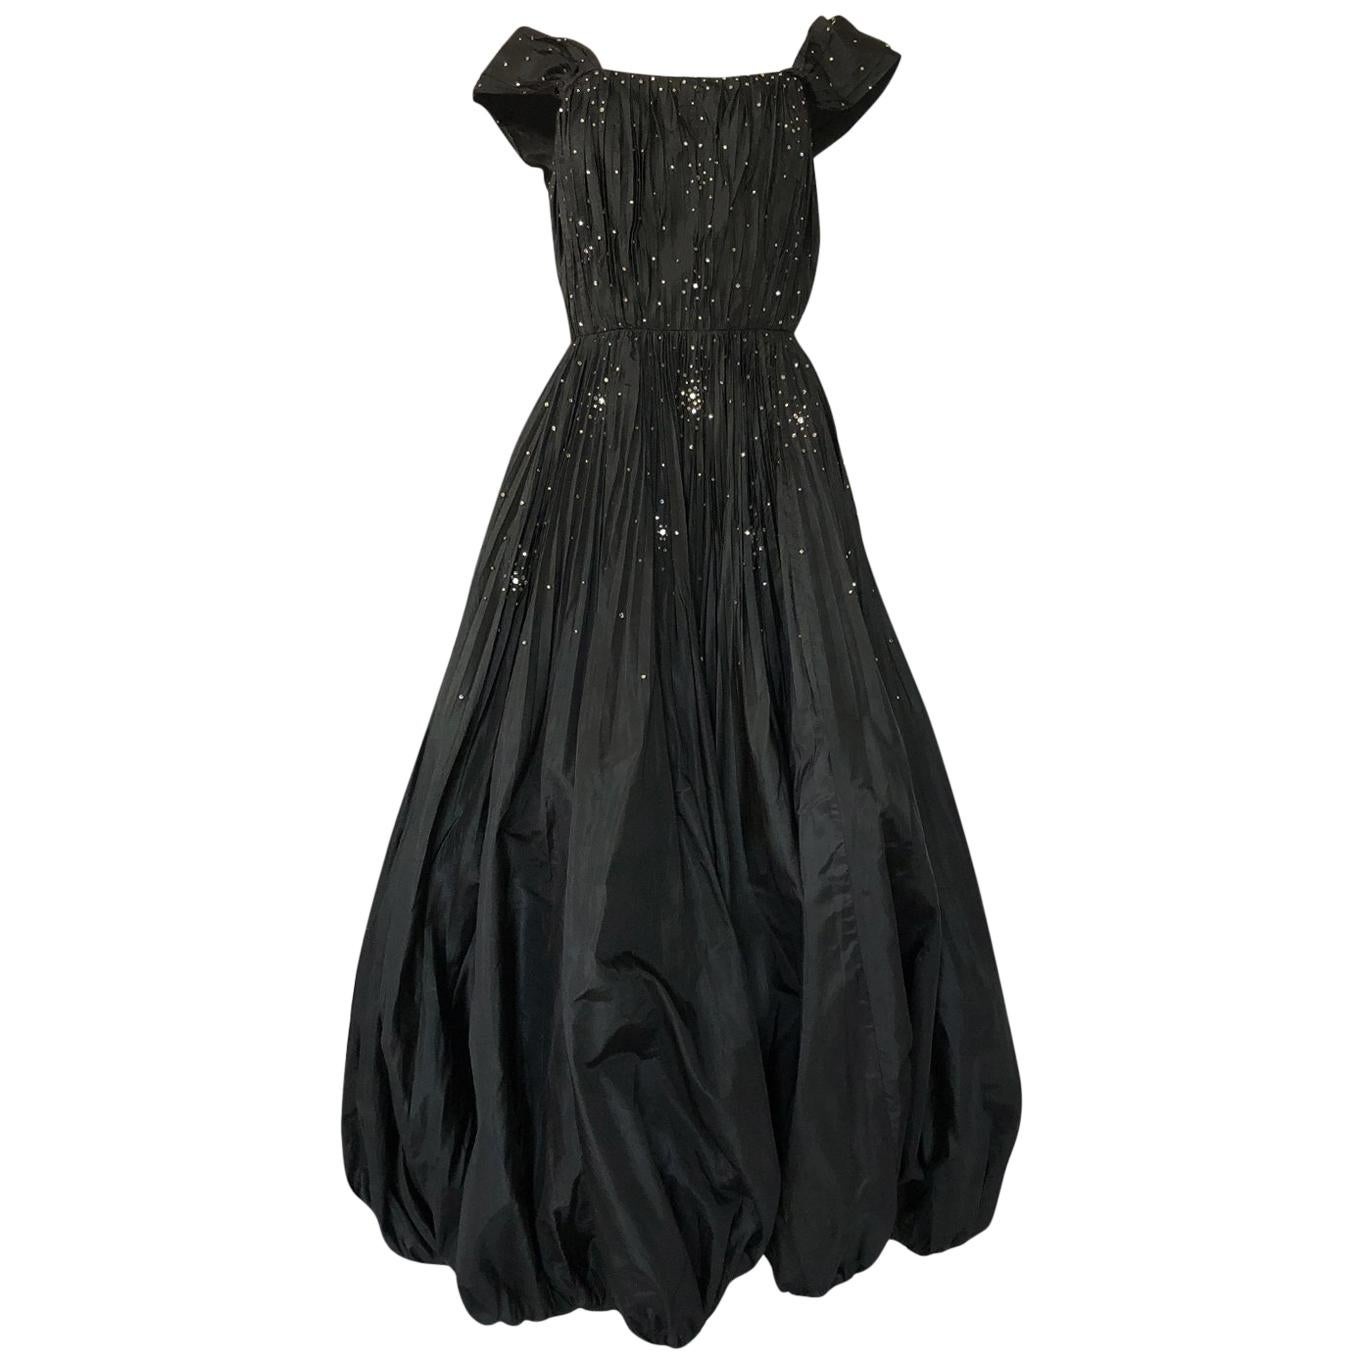 045f54c55c04 1960s Norman Hartnell for Neiman Marcus Black Wool Beaded Dress For Sale at  1stdibs